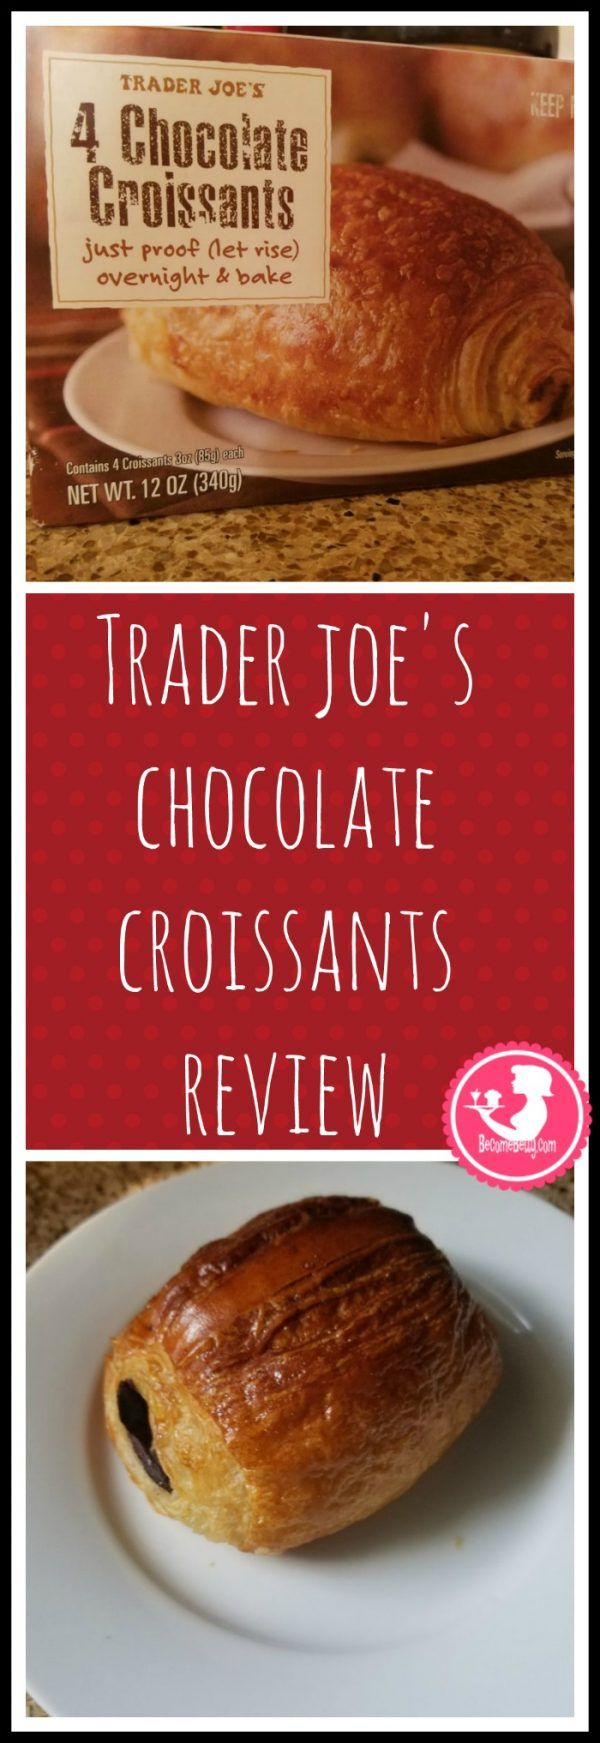 Trader Joes Chocolate Croissants are frozen and delicious. Want to know if this is something worth buying from Trader Joe's? All pins link to BecomeBetty.com where you can find reviews, pictures, thoughts, calorie counts, nutritional information, how to prepare, allergy information, and how to prepare each product.